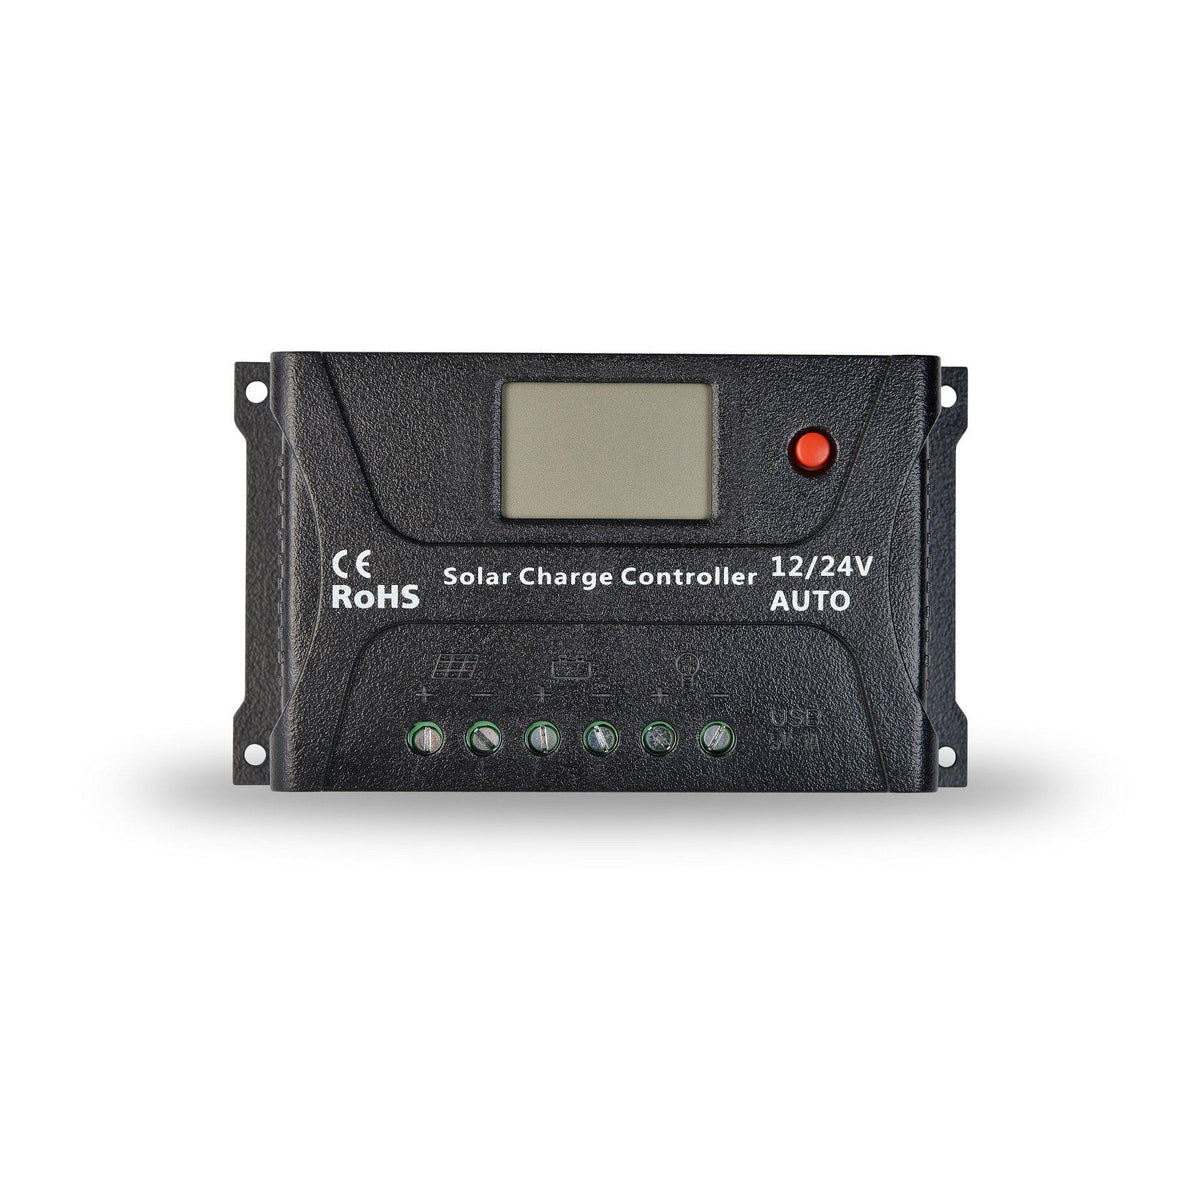 InstaPower 20A Solar Charge Controller 12V/24V With LCD Display - SBP Electrical